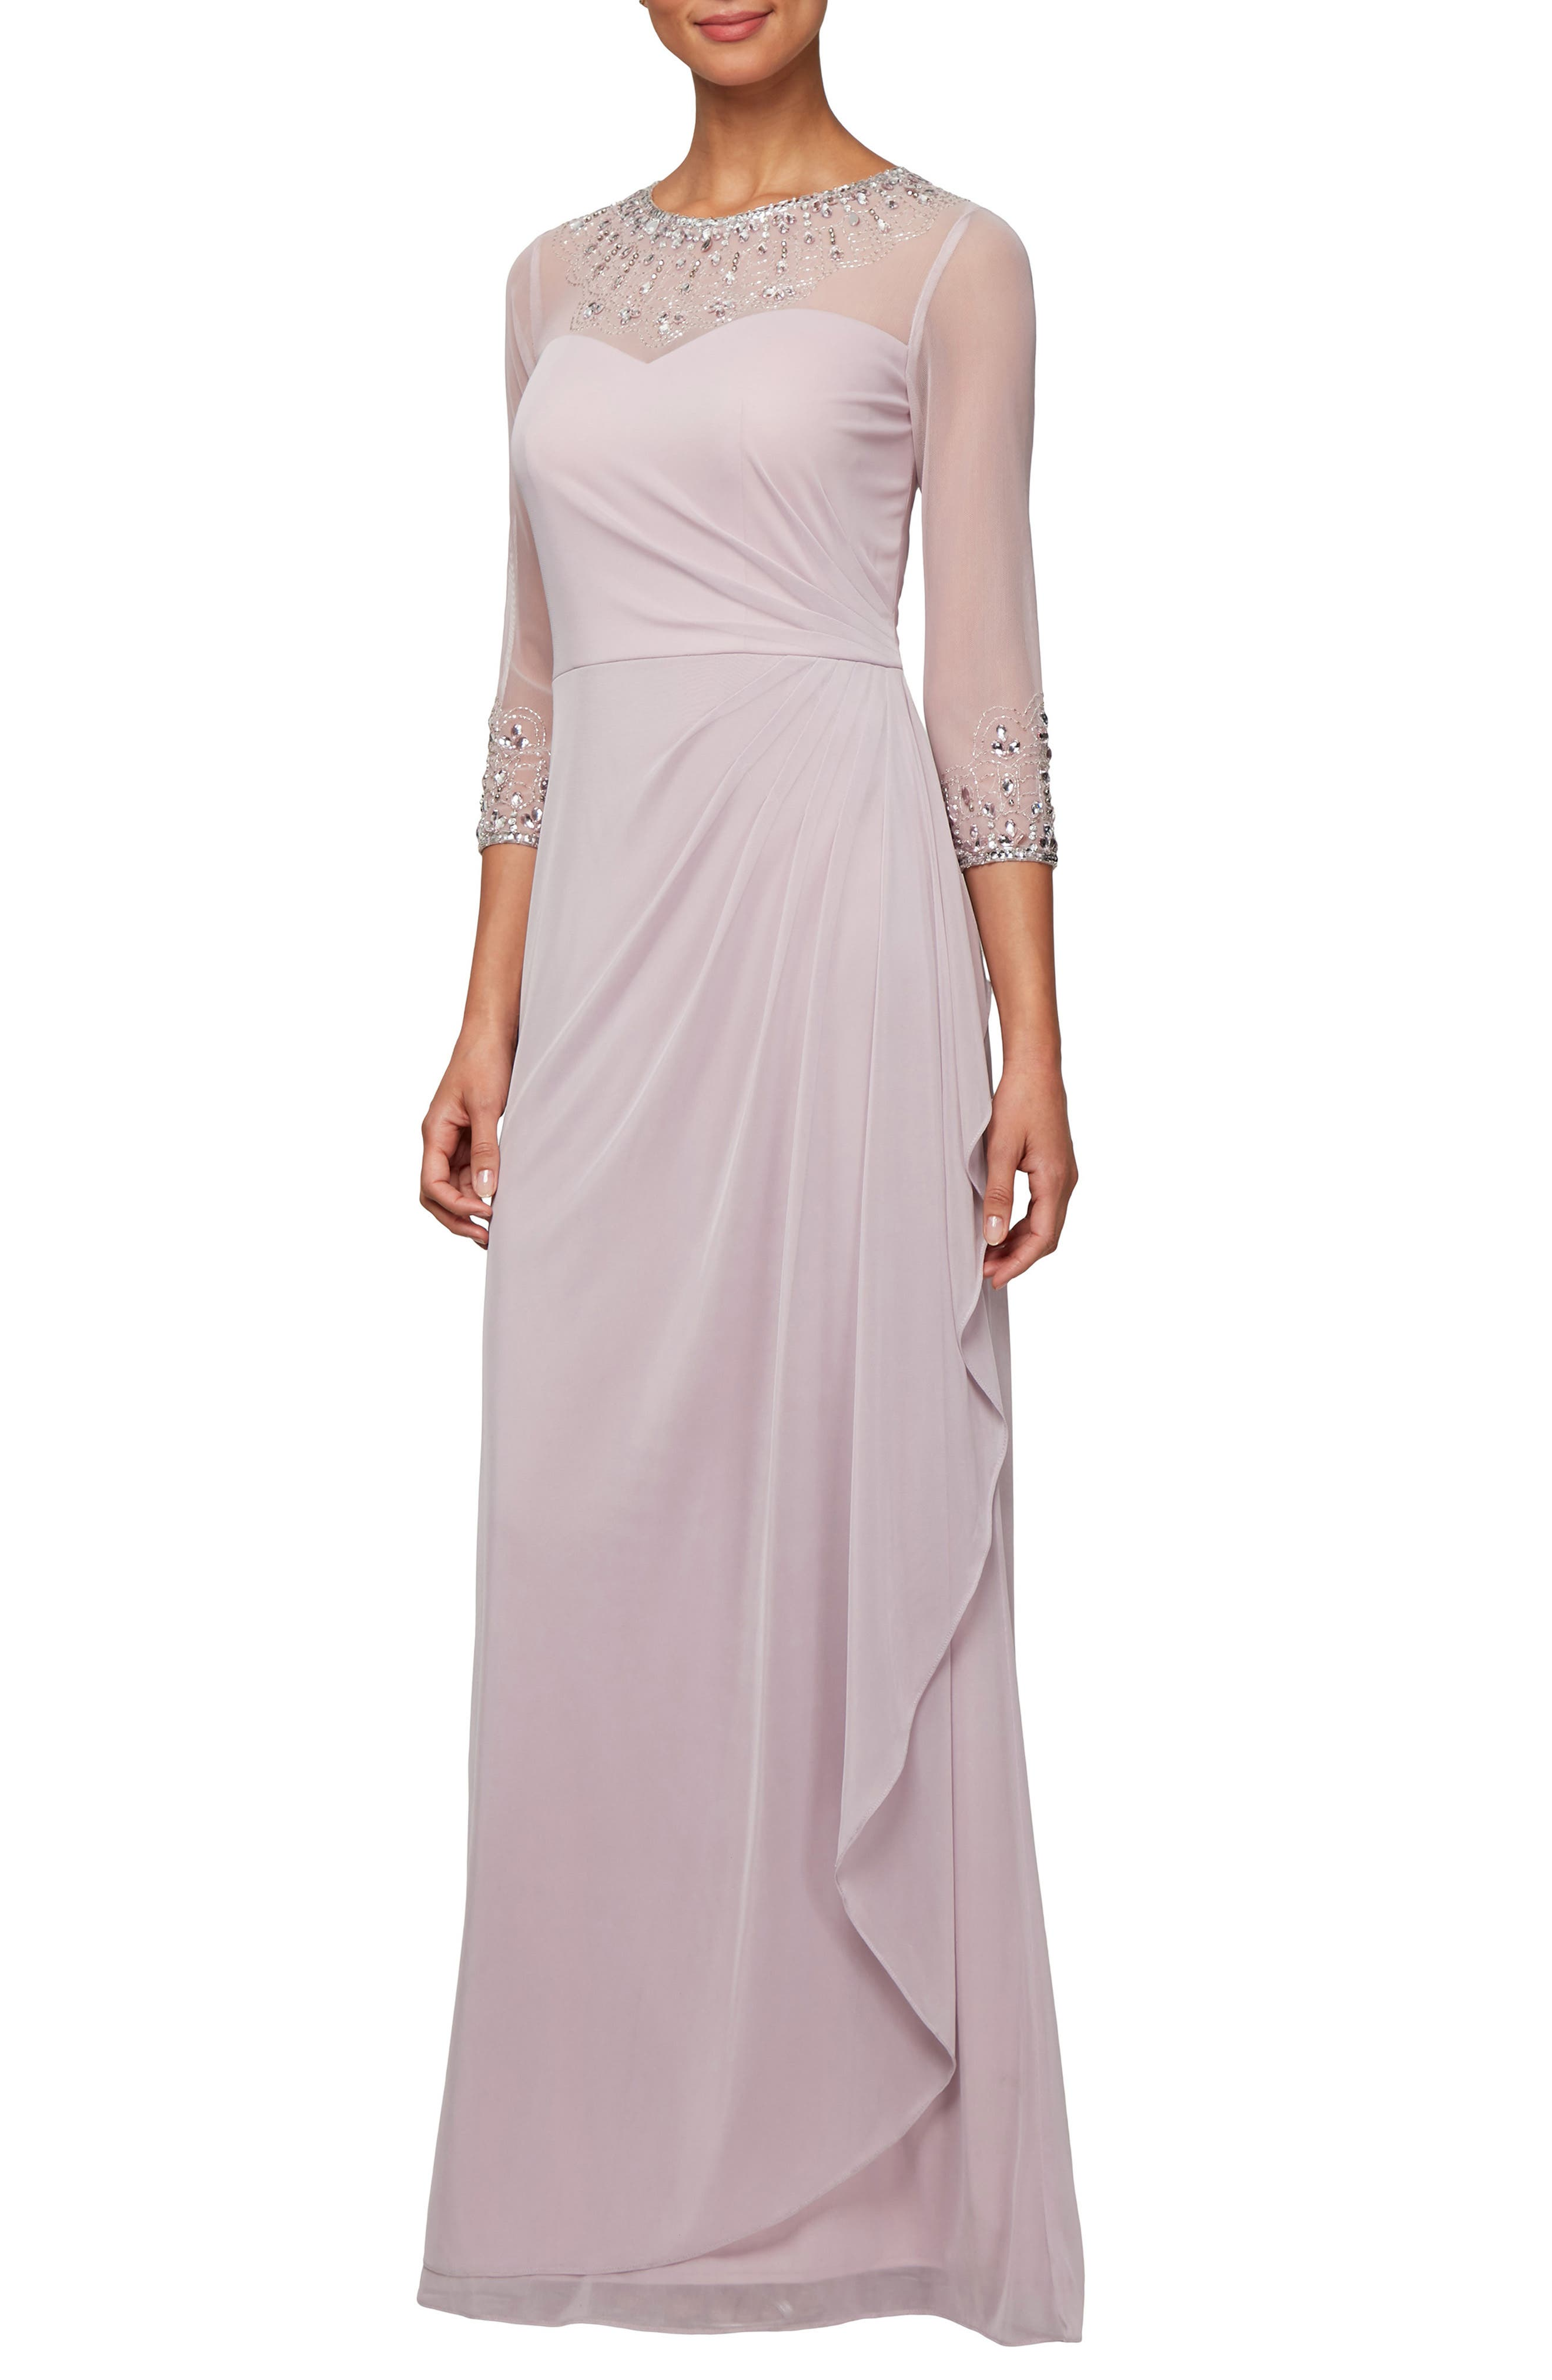 ALEX EVENINGS, Embellished A-Line Gown, Main thumbnail 1, color, SMOKEY ORCHID